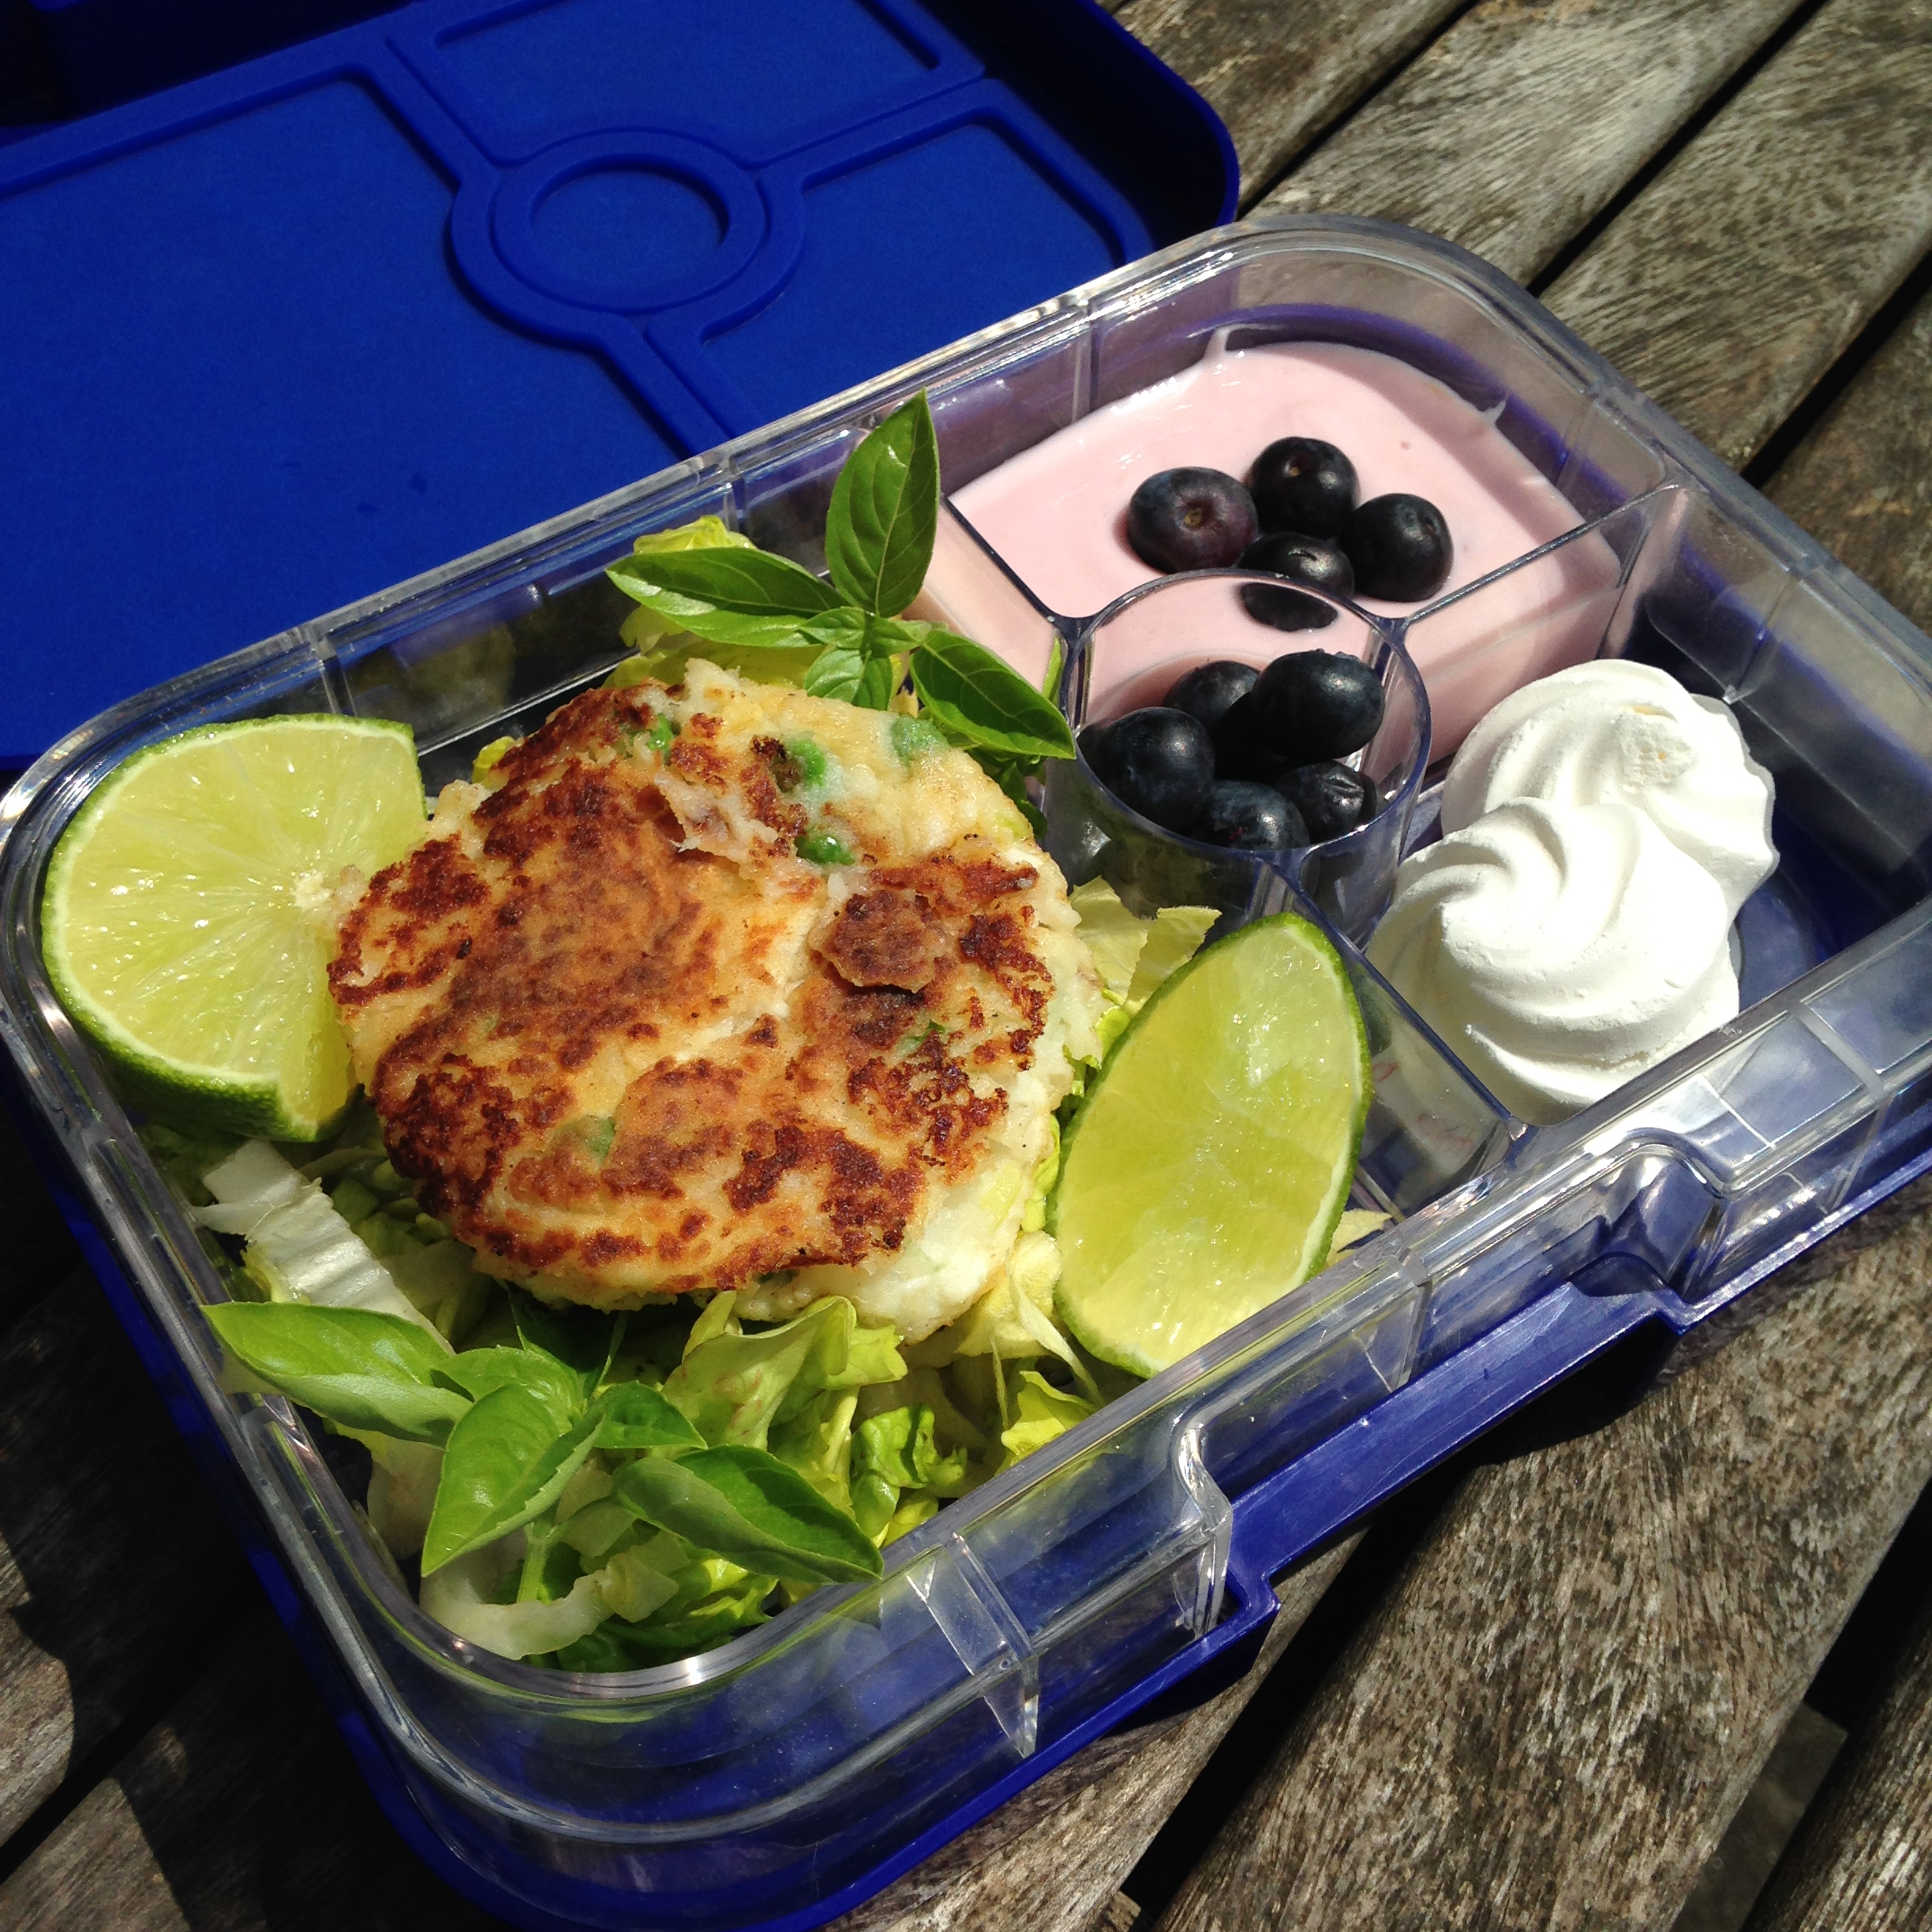 Myrtille Blue Yumbox Panino with Homemade Fish Cakes